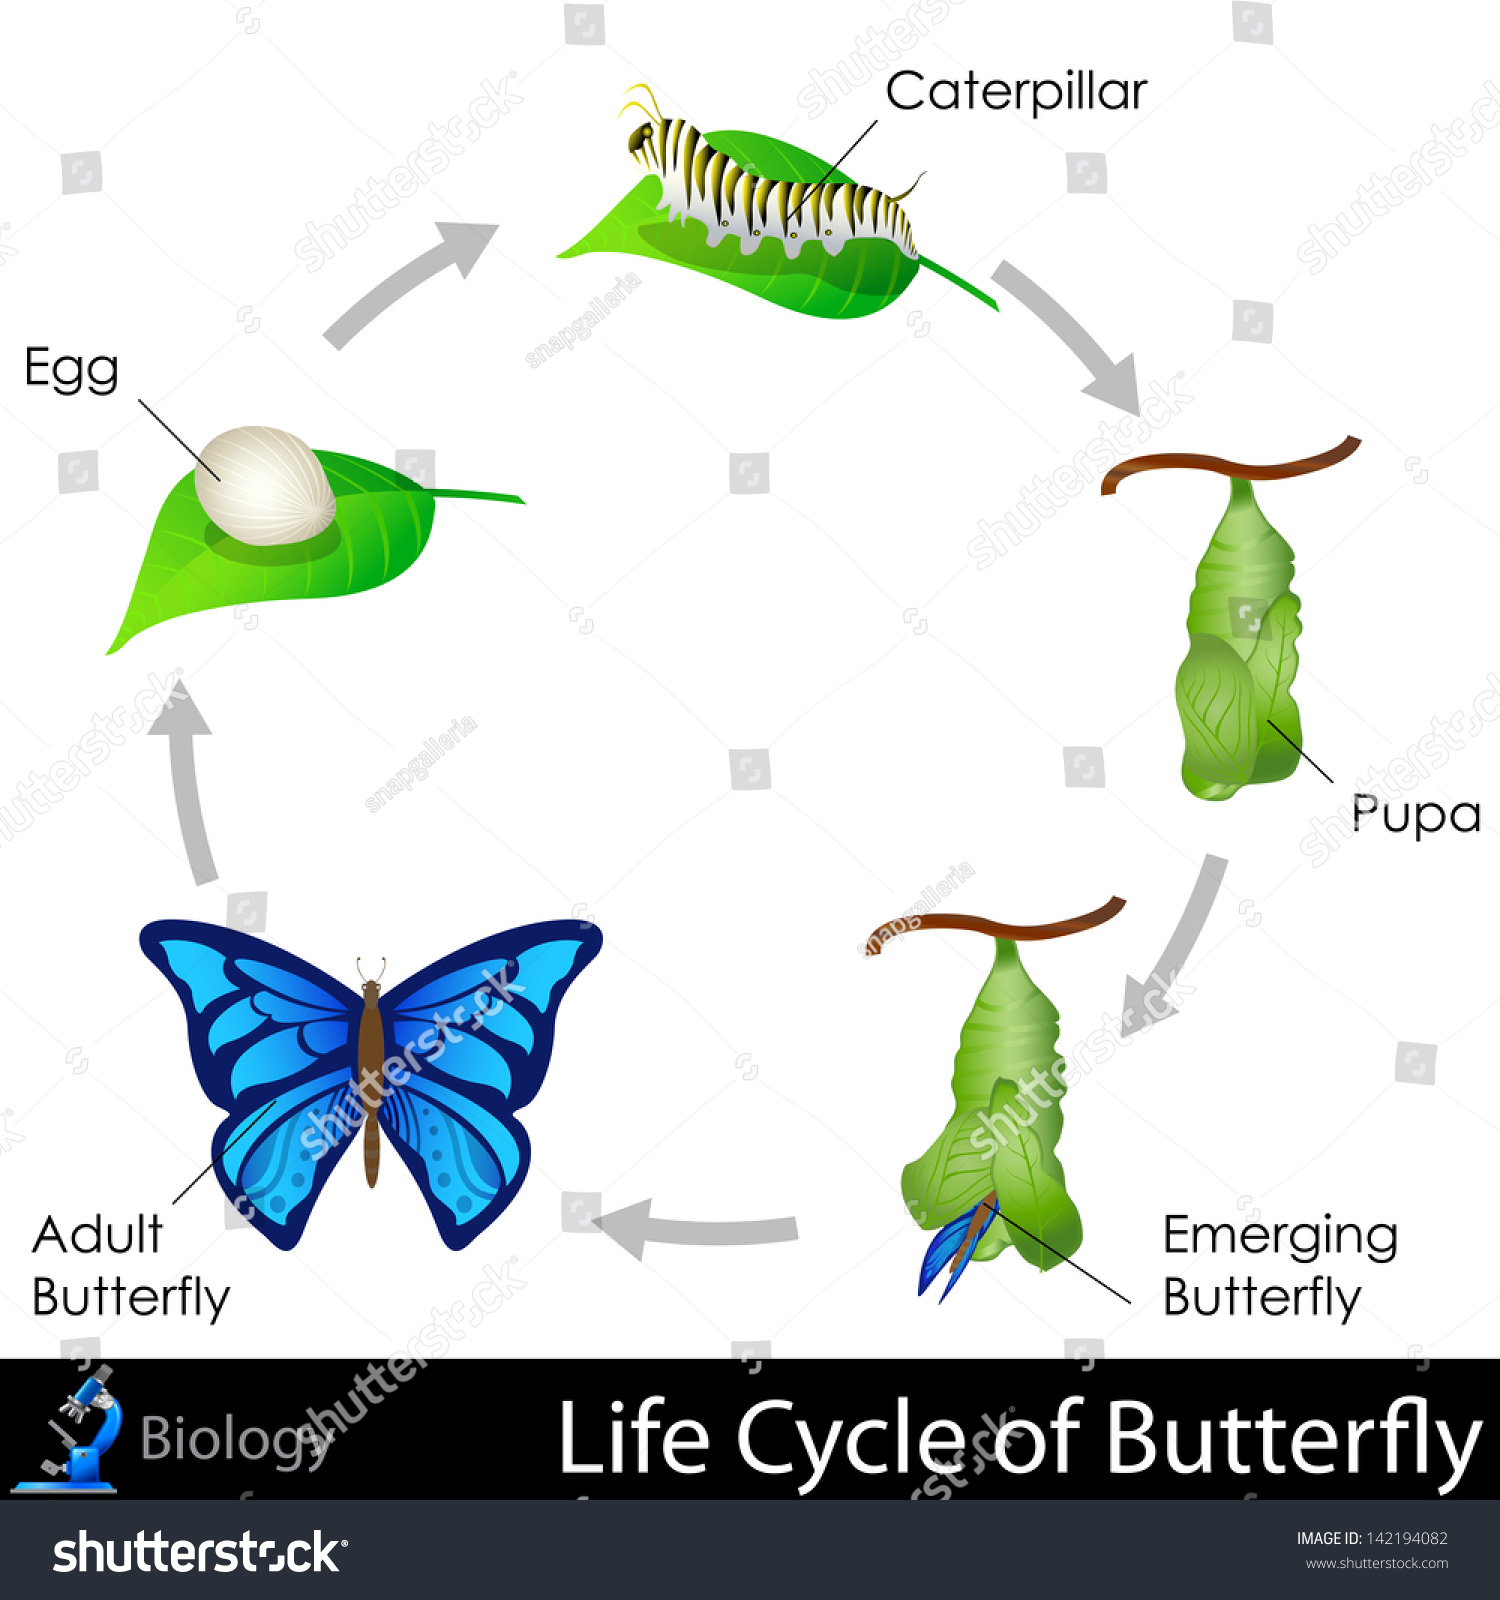 easy to edit vector illustration of lifecycle of butterfly diagram    save to a lightbox